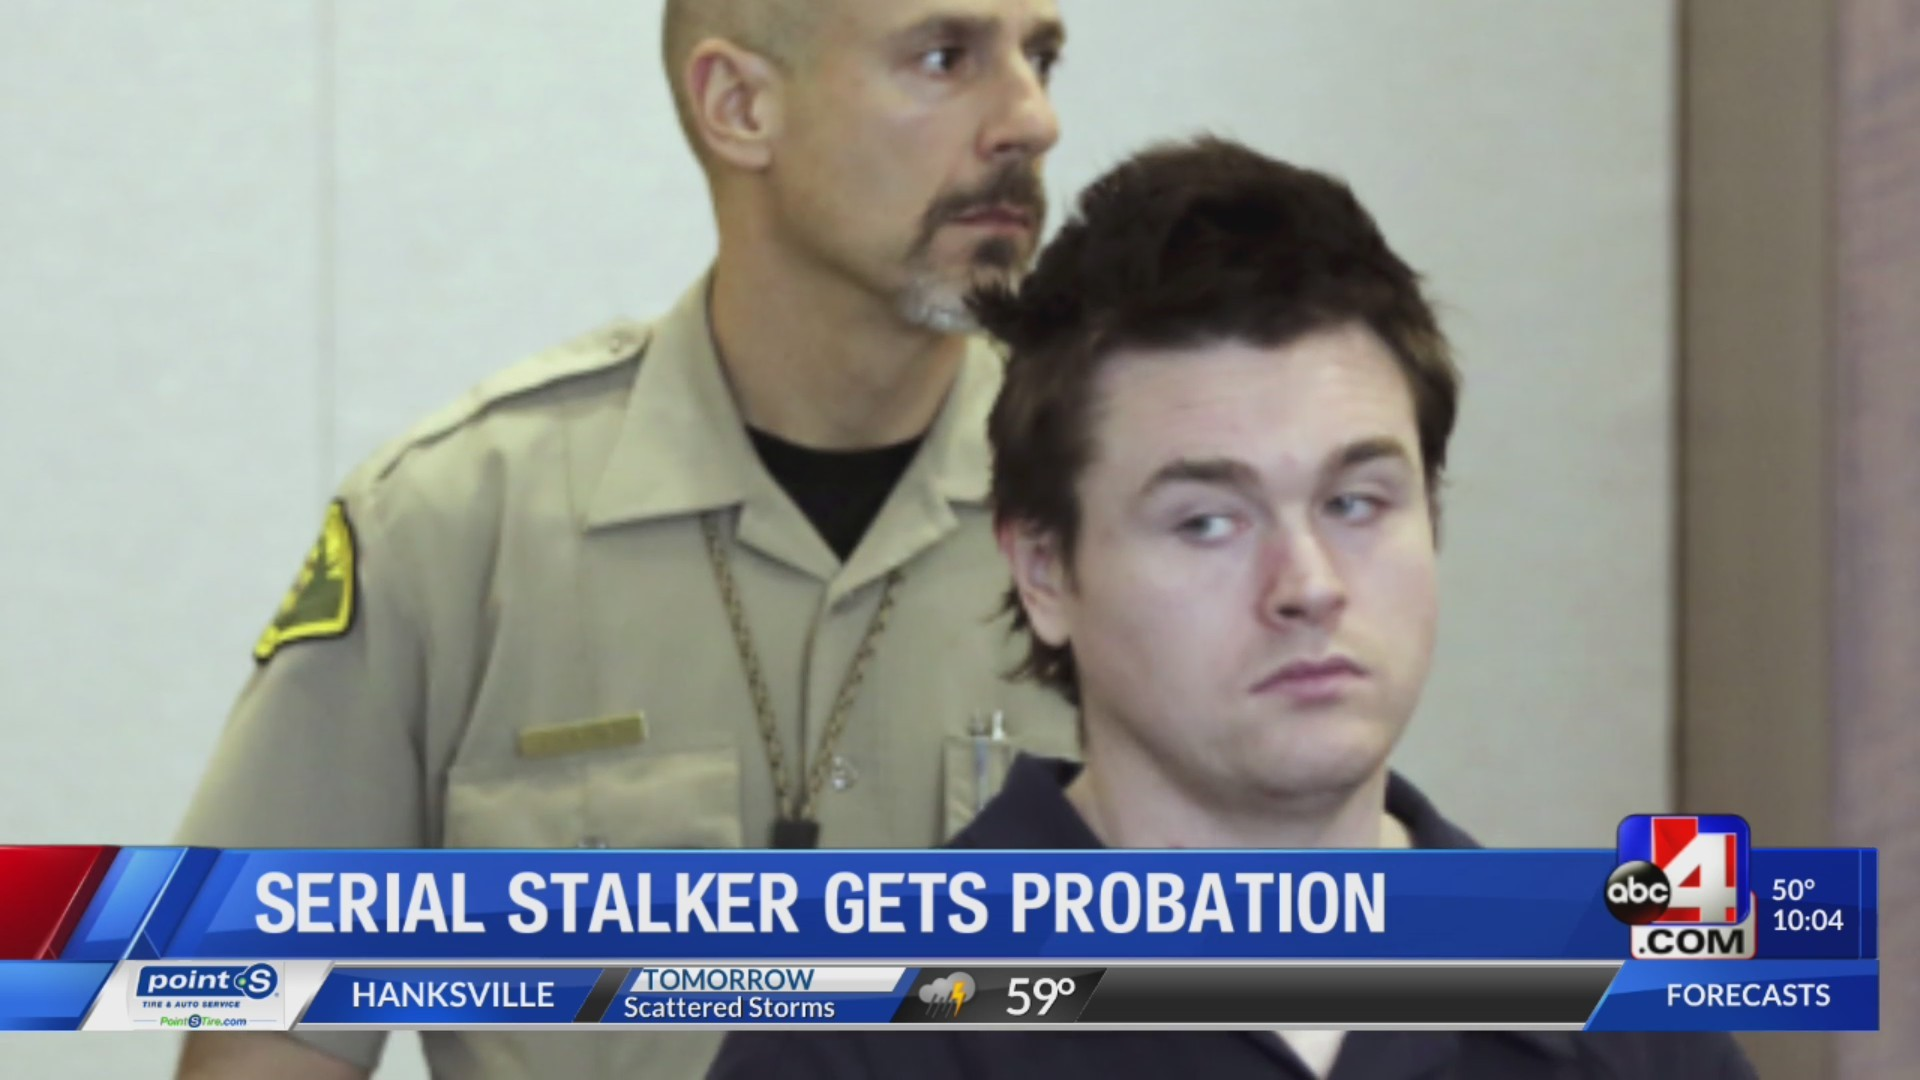 A flaw in the law: serial stalker gets probation